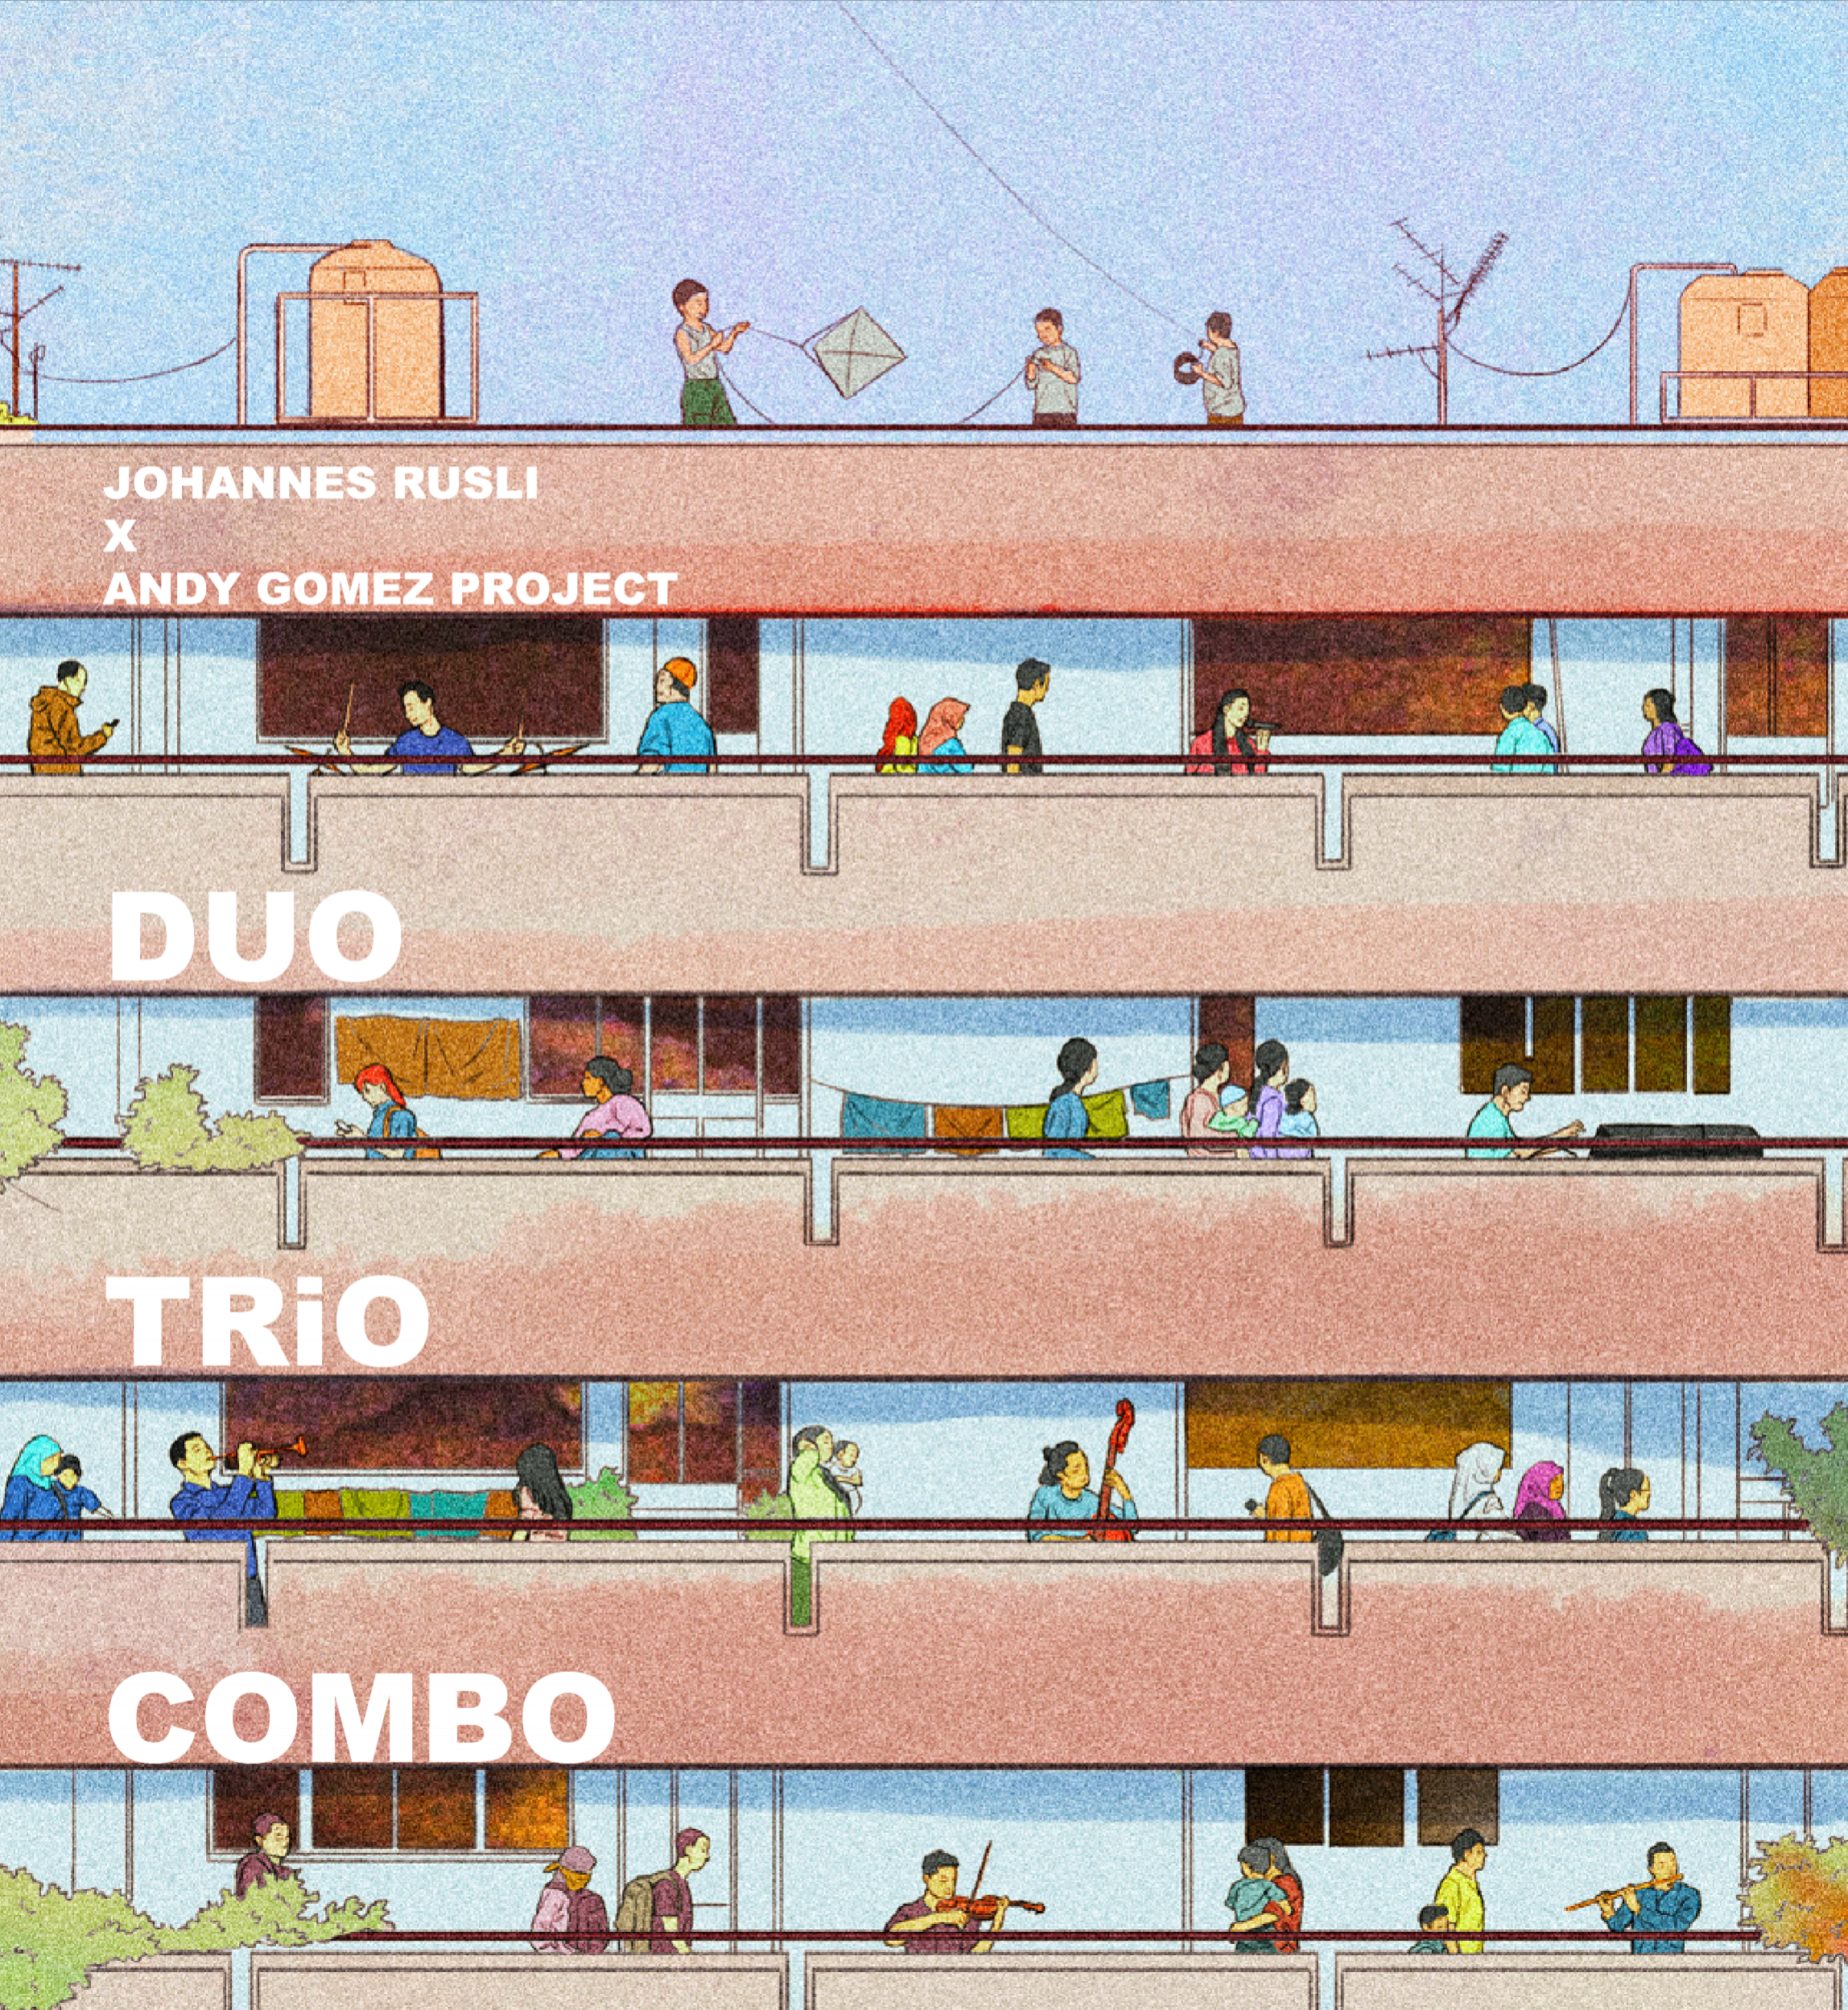 DUO TRIO COMBO - Johannes Rusli x Andy Gomez ProjectMusic Works Release Concert // MWRCTuesday, 30 October 20186pm - 8pmby iCSL℗2018 iLuwi Production